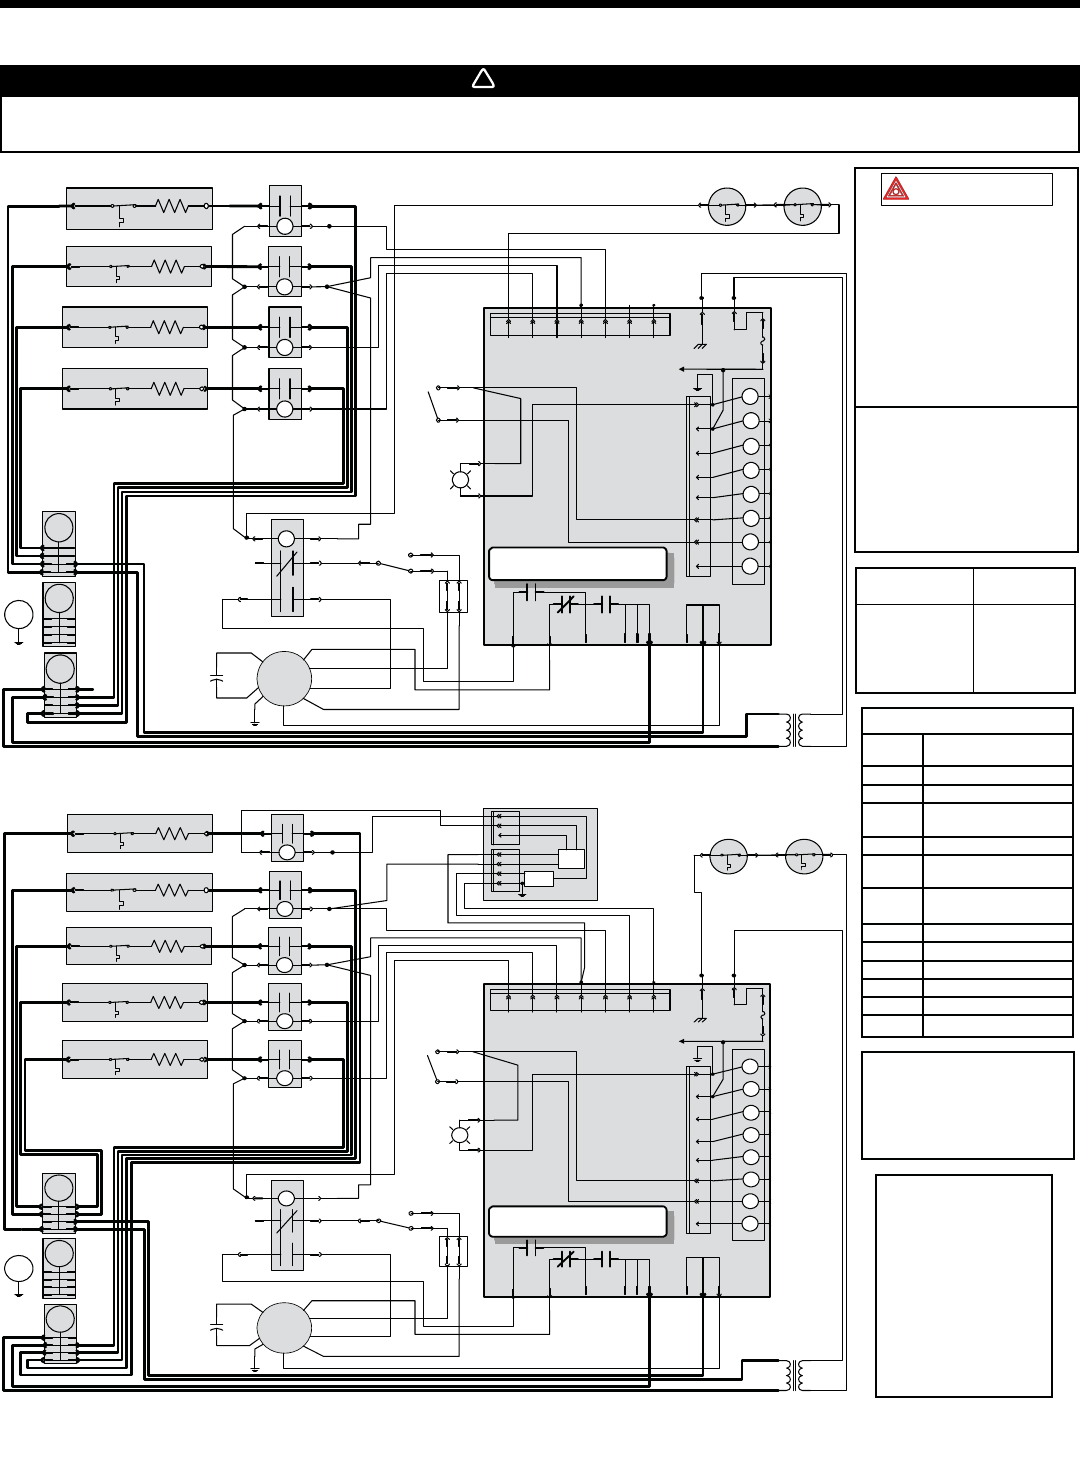 [DIAGRAM_38EU]  Broan Furnace 30042432A Users Manual D Series Nortron Electric Furnaces  Installation (30042432A) | Broan Electric Furnace Wiring Diagram |  | UserManual.wiki